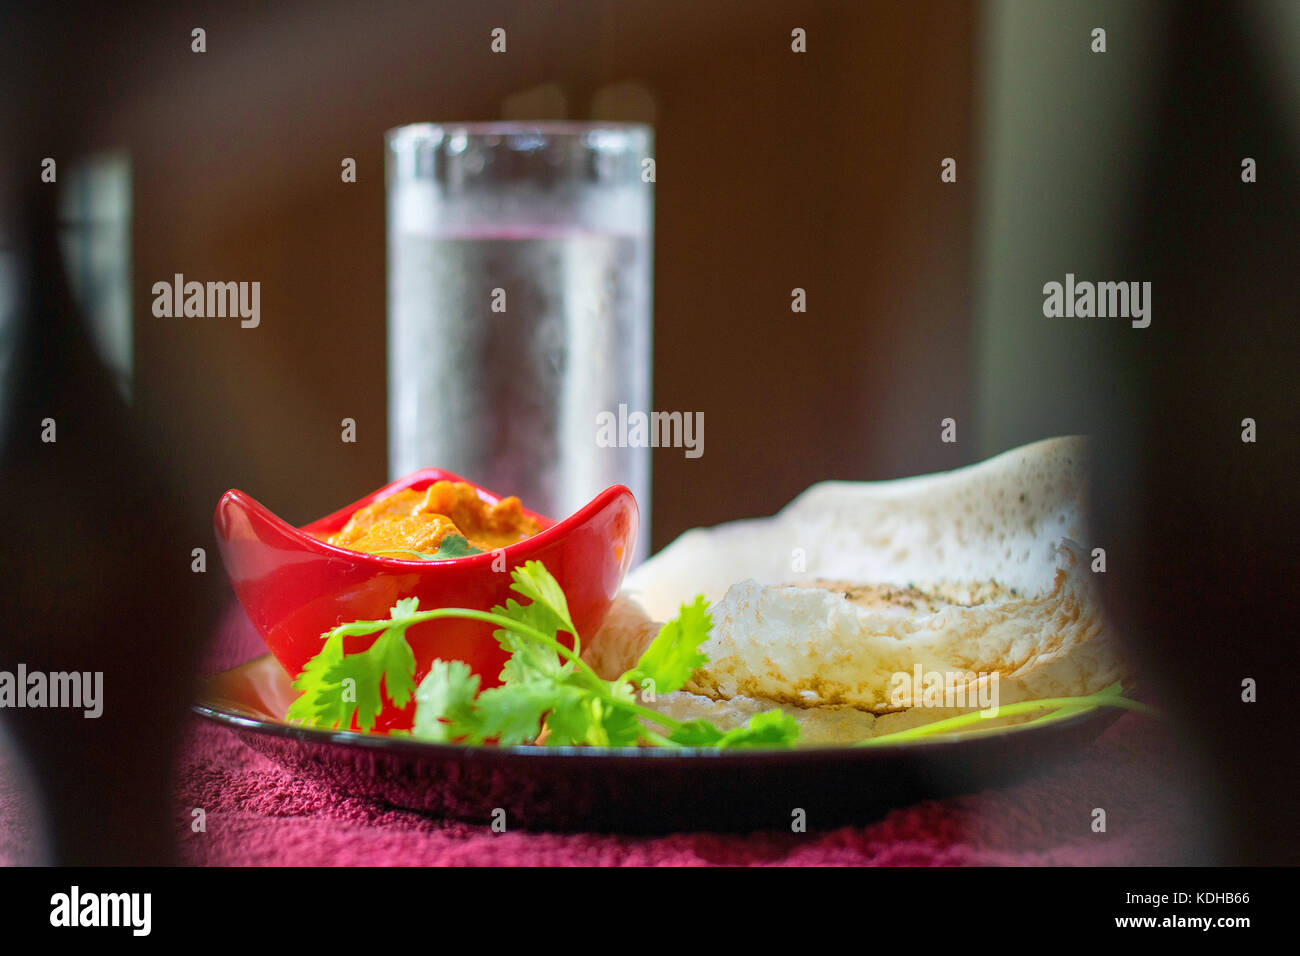 Indian Gee rice with complete curry meal served on a tray in a restaurant - Stock Image